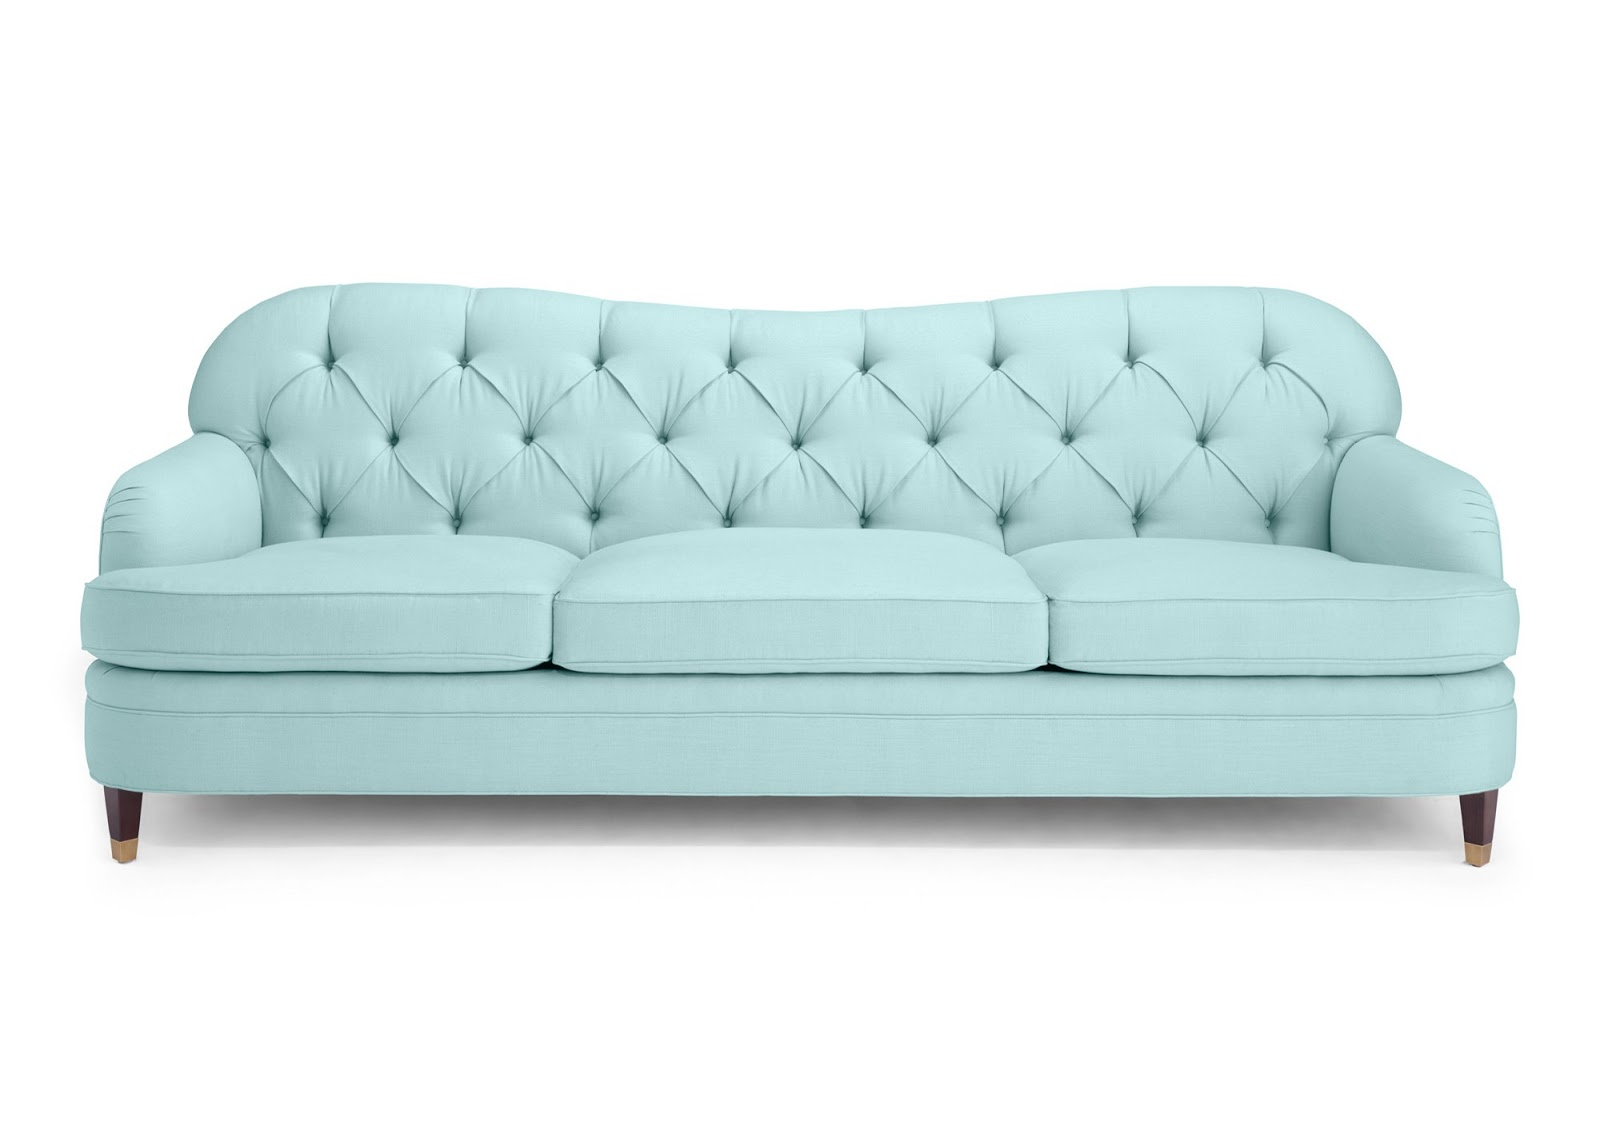 jacqueline sofa floral couch the polka dotted truth by harbin kate spade